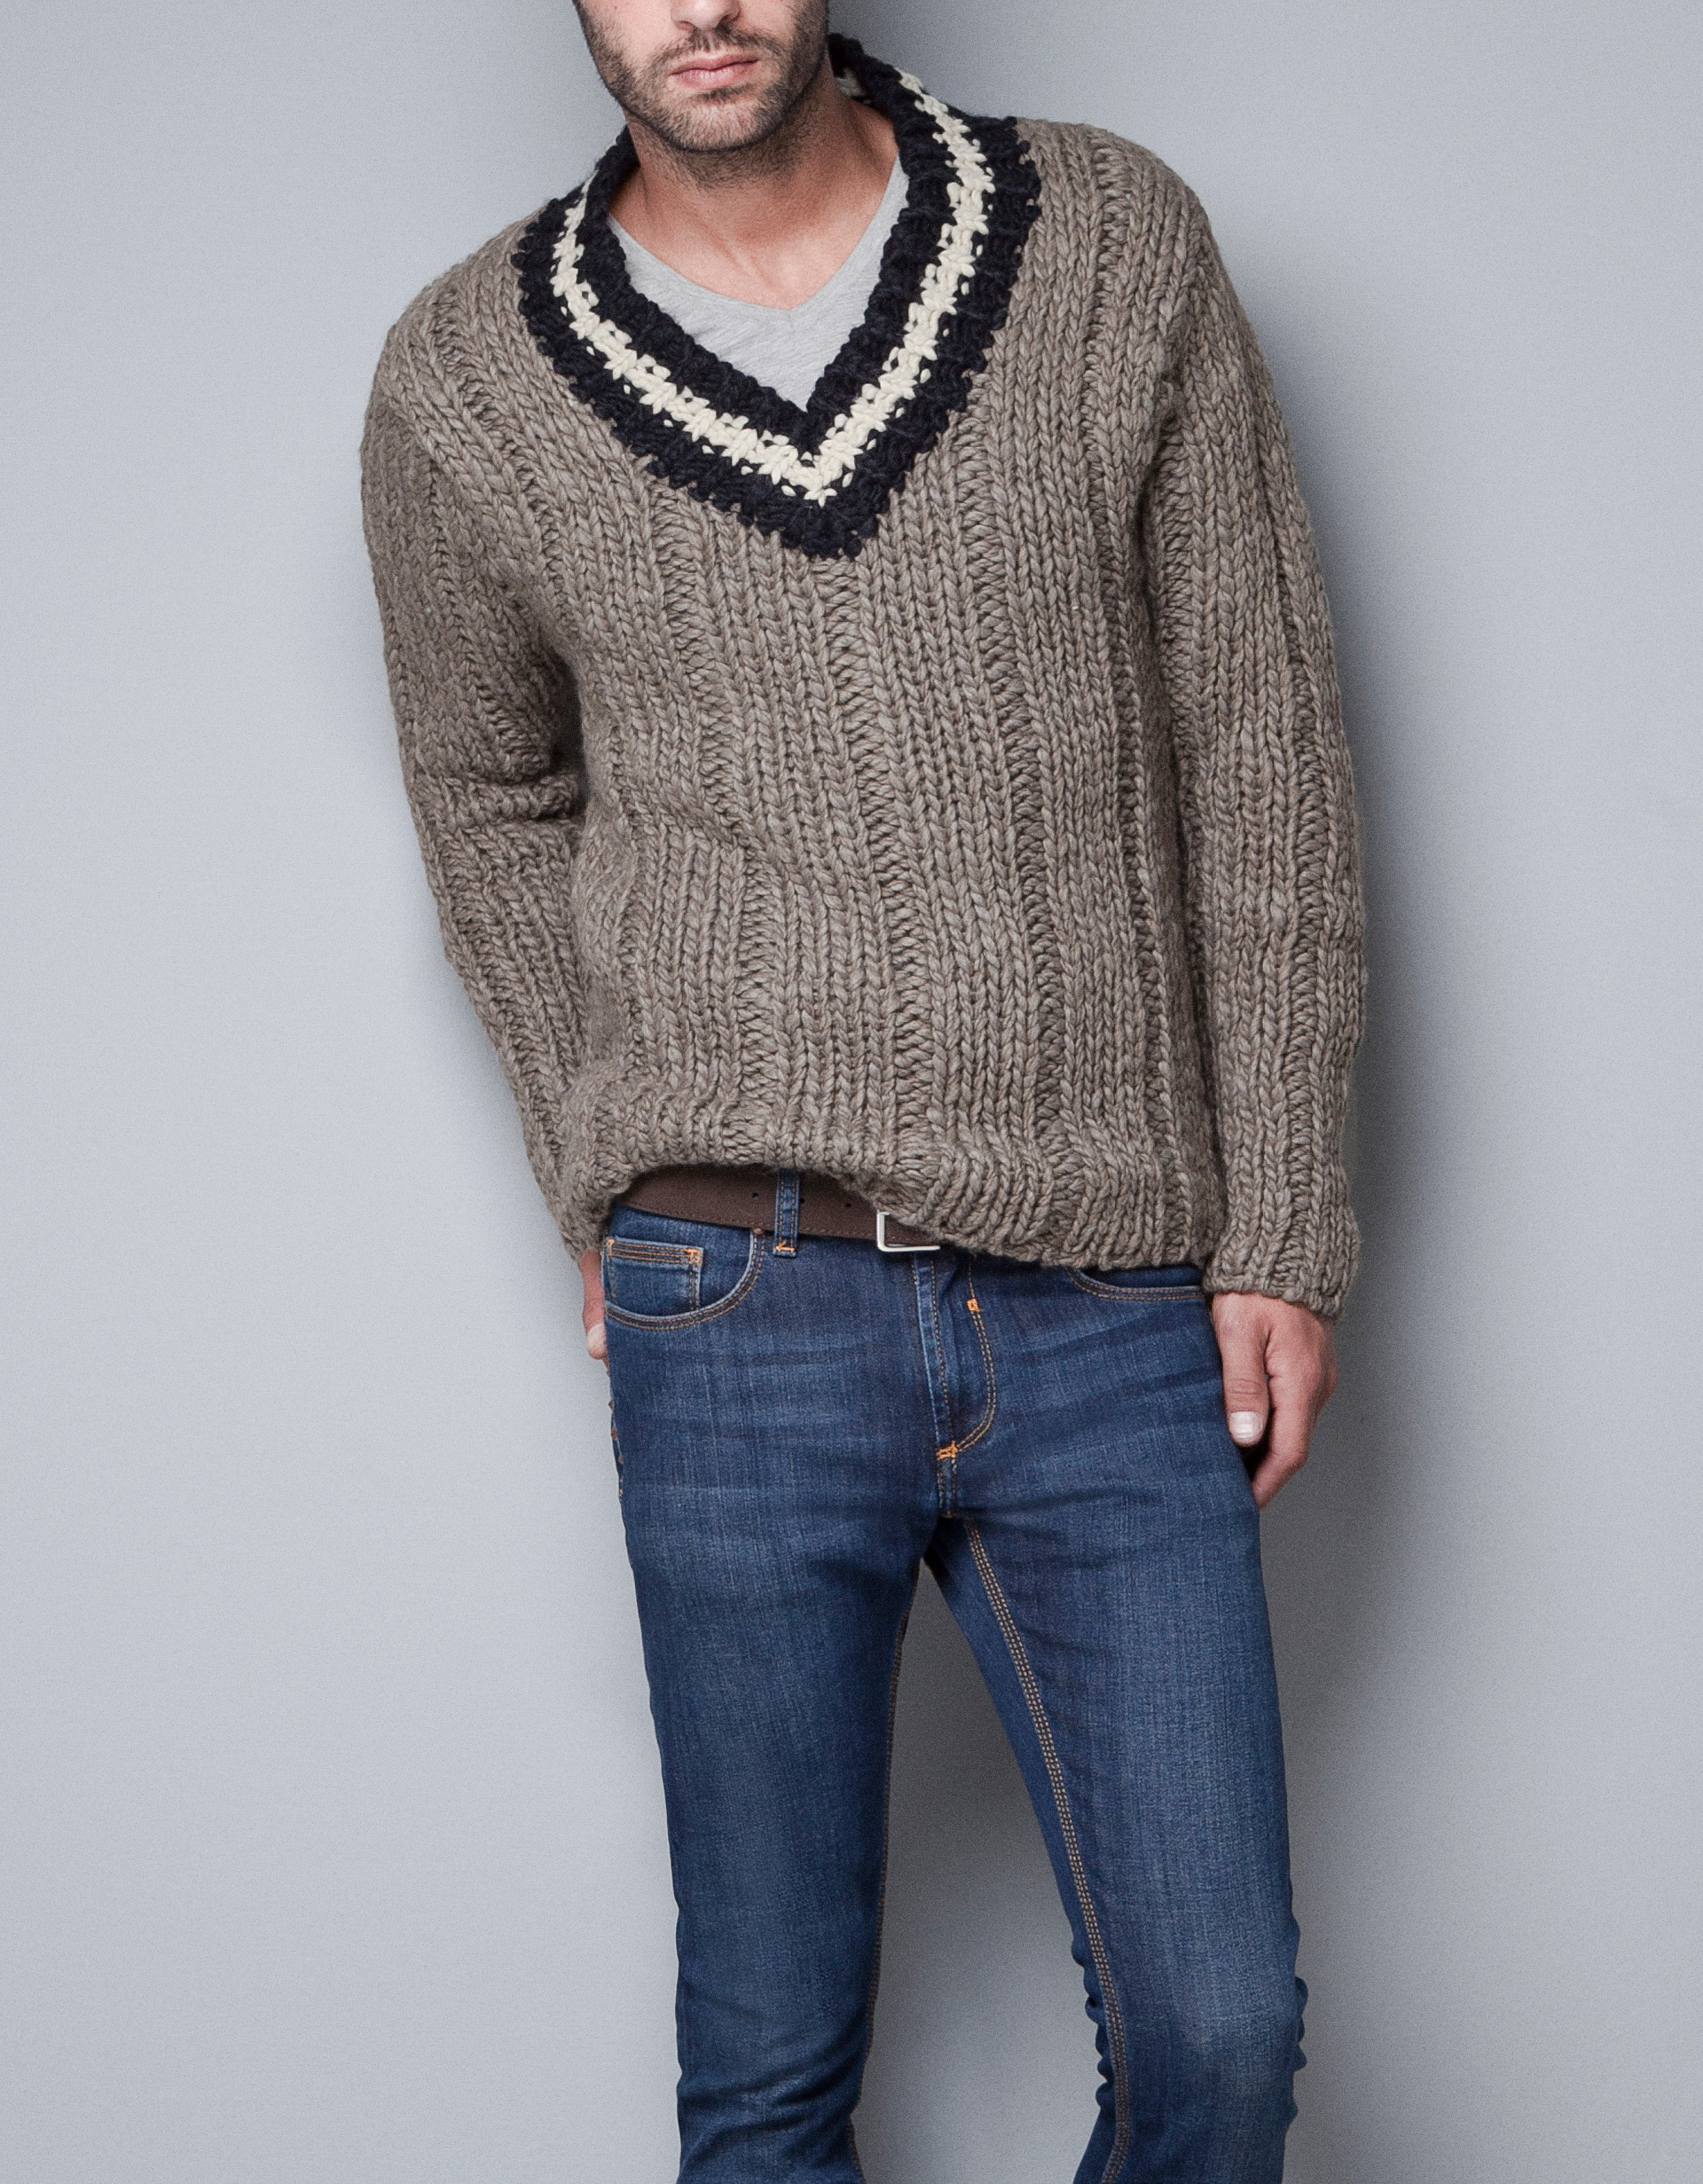 Zara Men'S Sweater 53